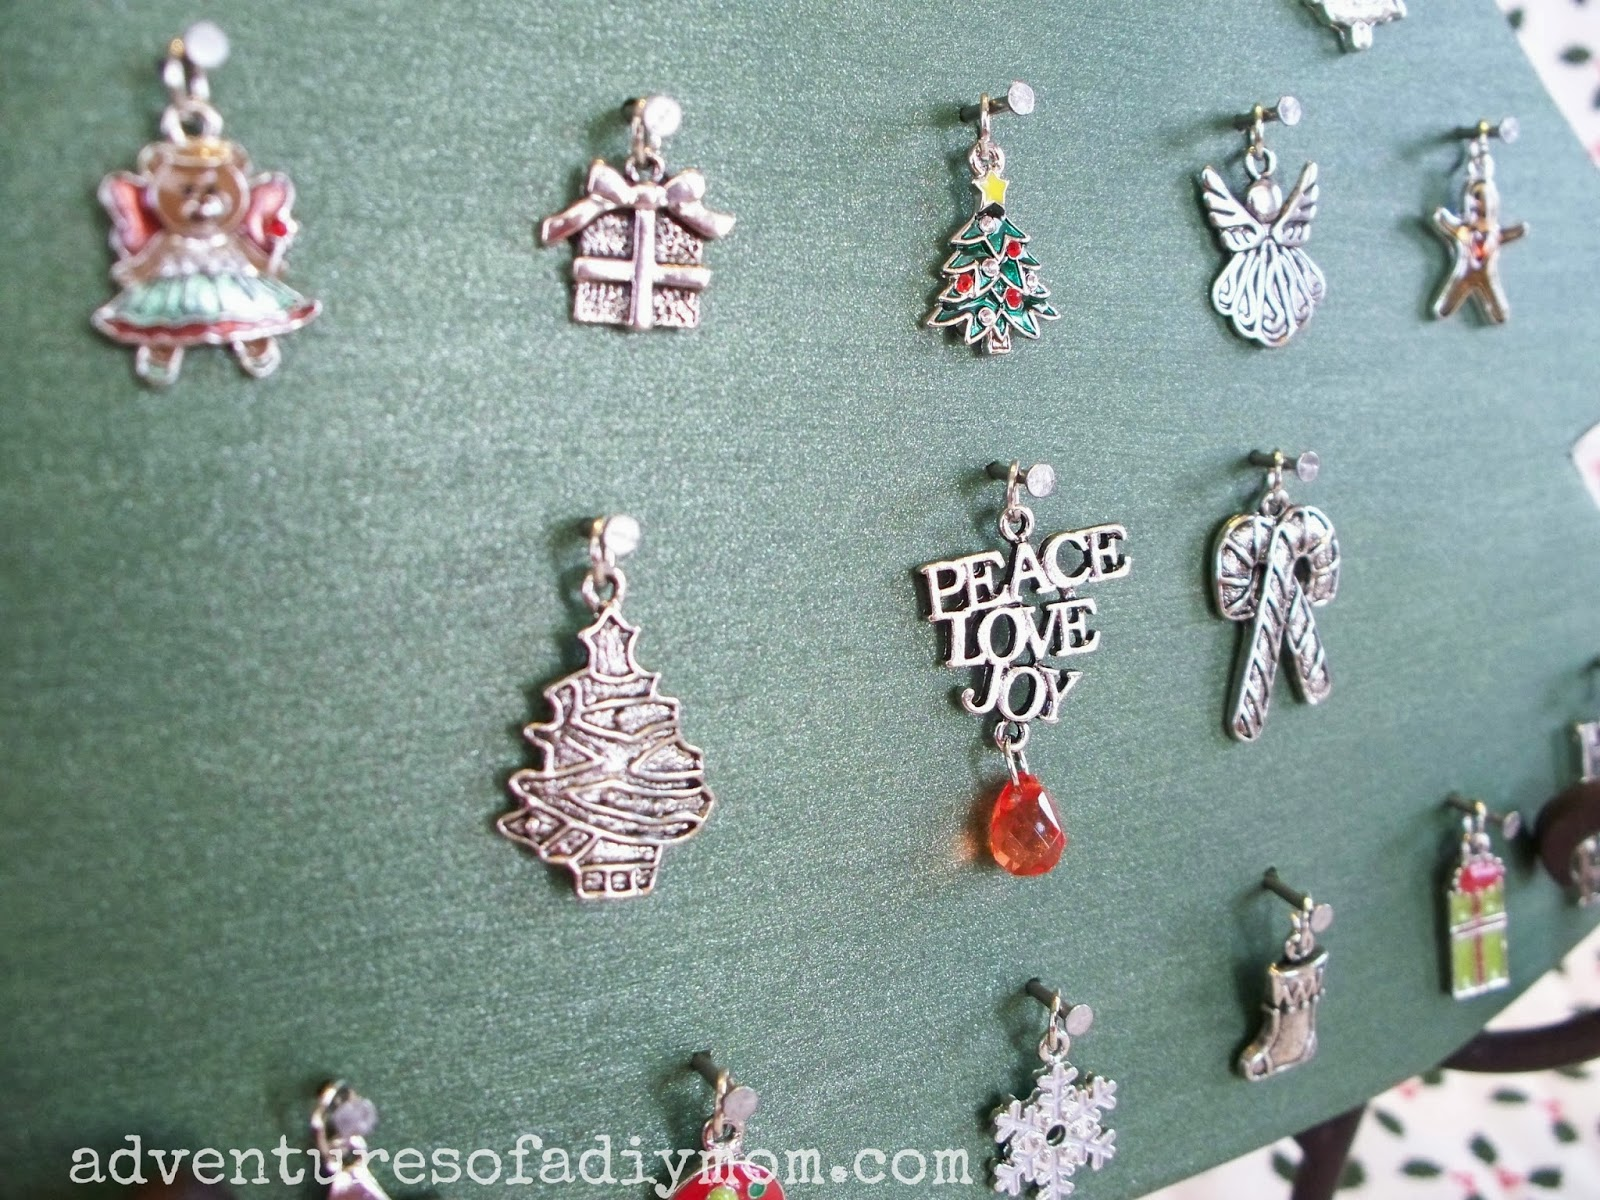 Christmas Charm Advent Tree |Adventures of a DIY Mom